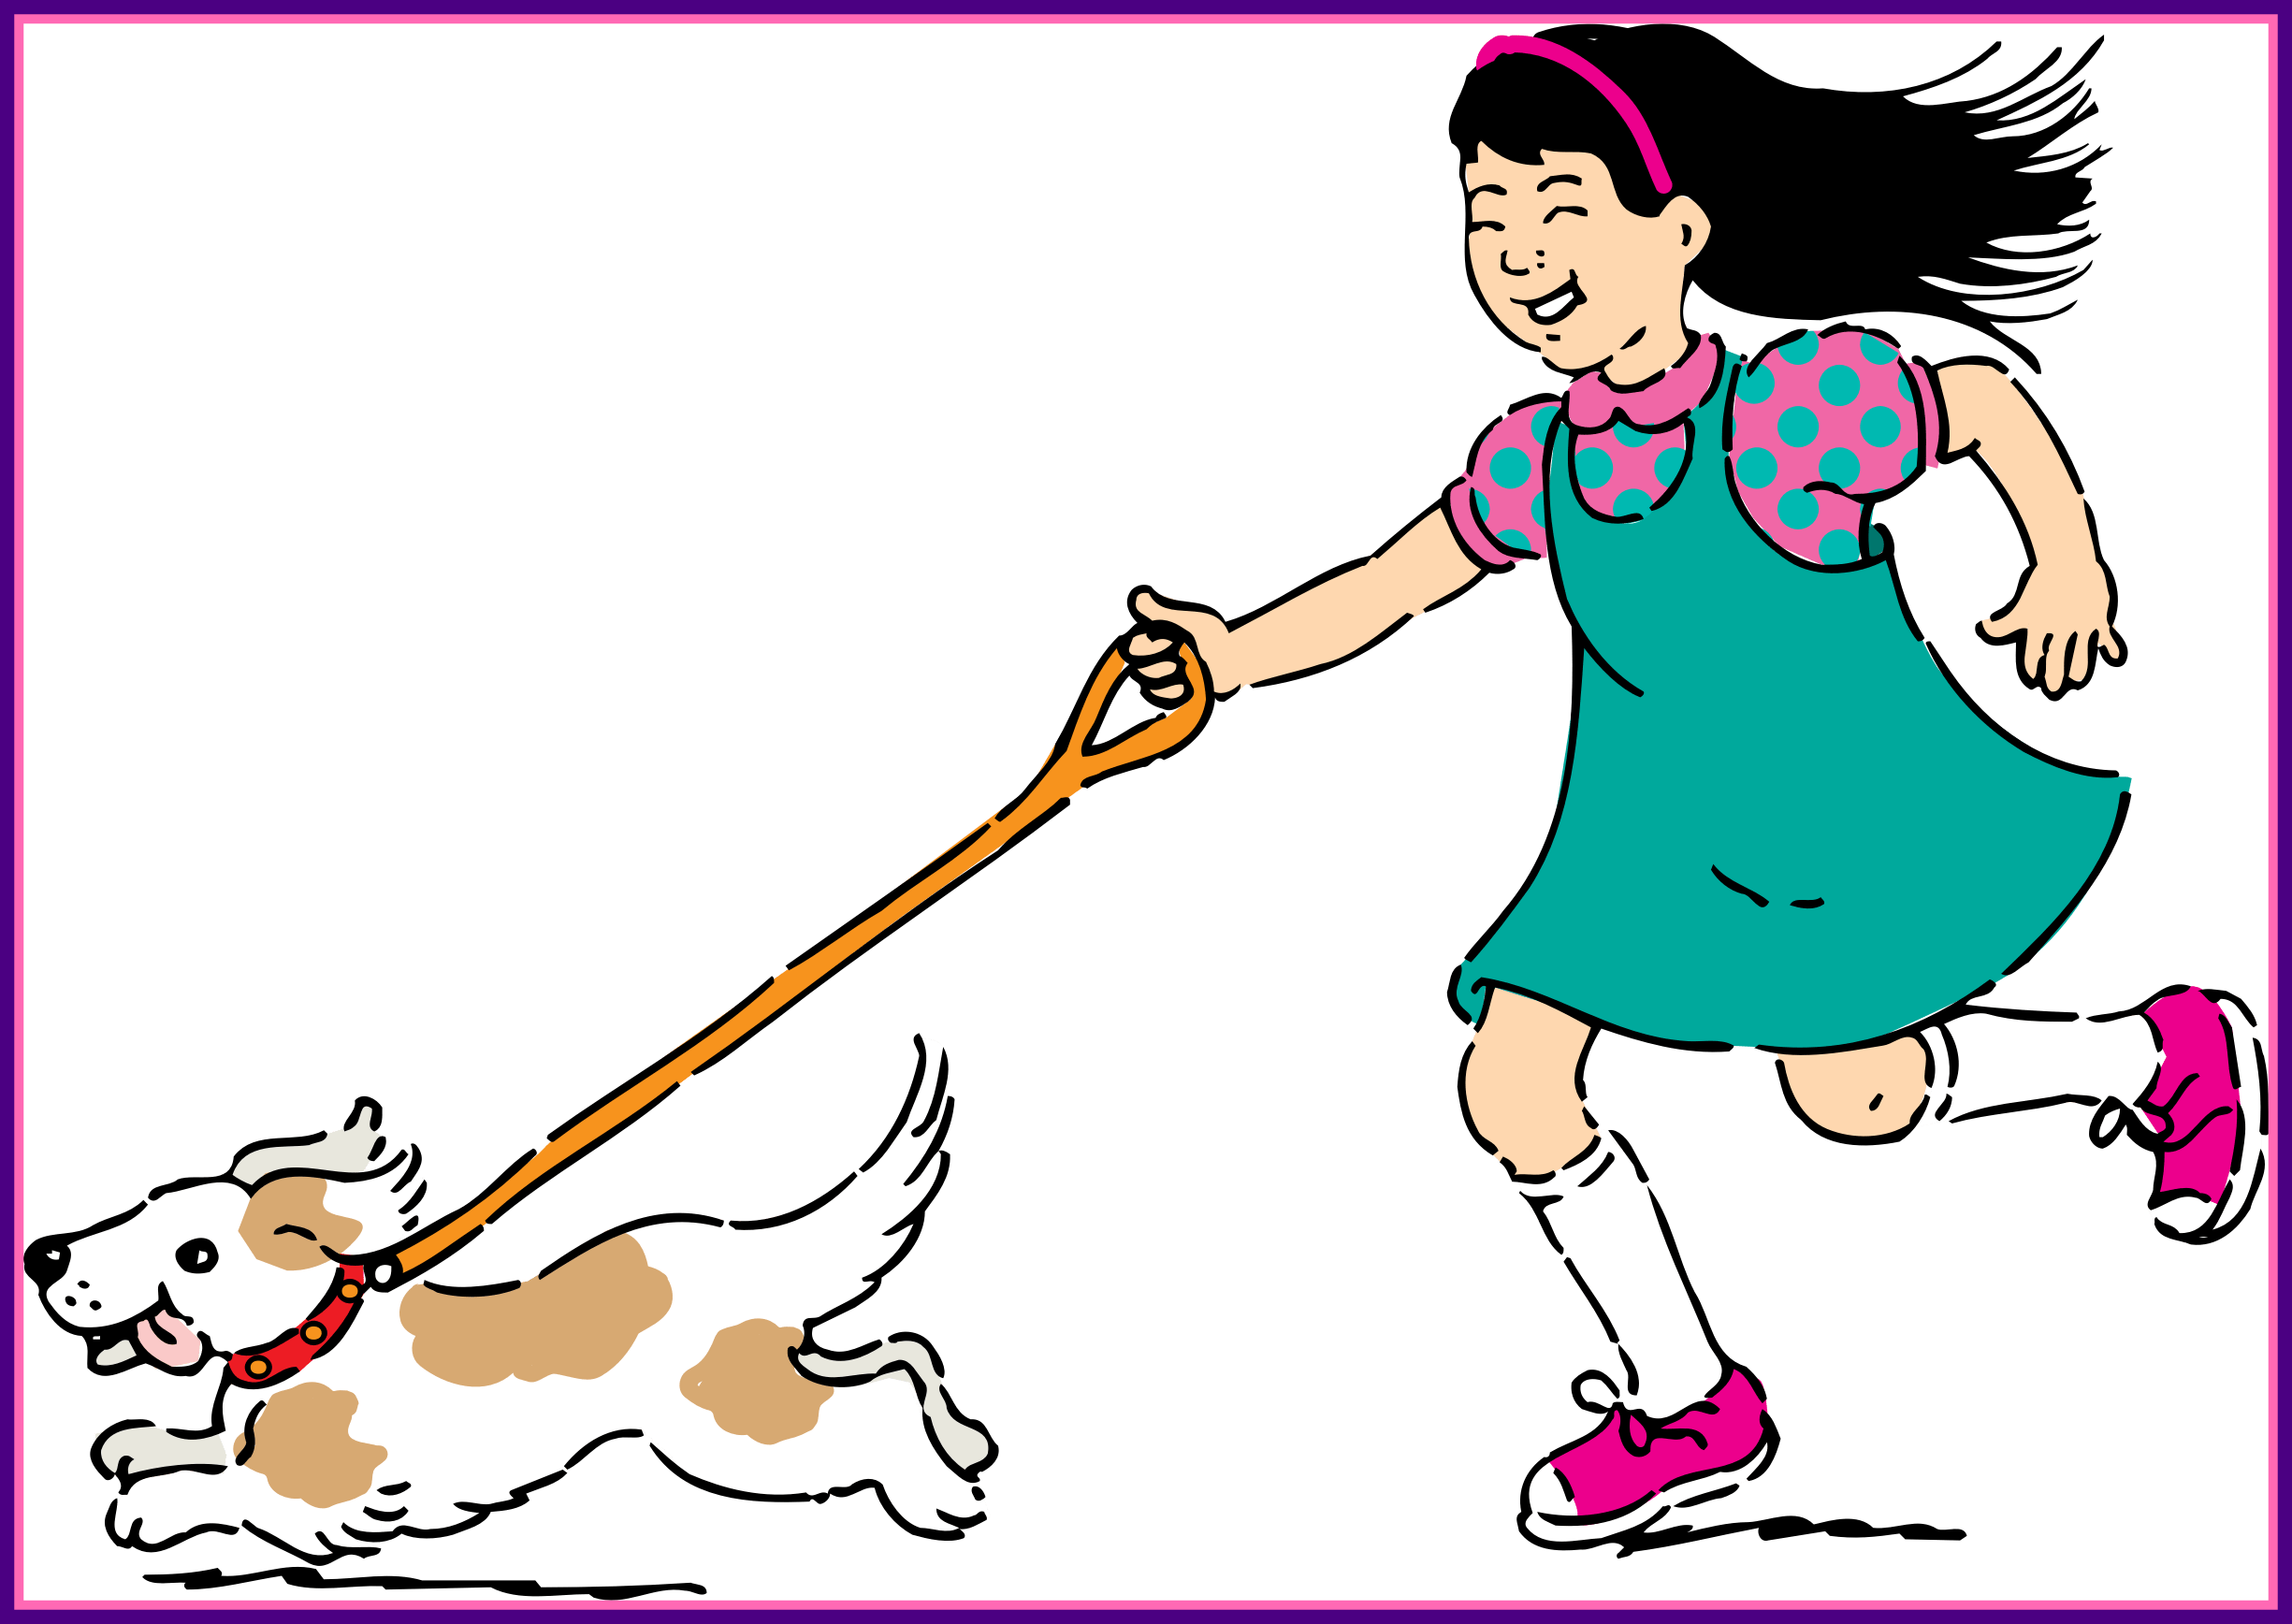 Walk drawing girl. Walking dog svg